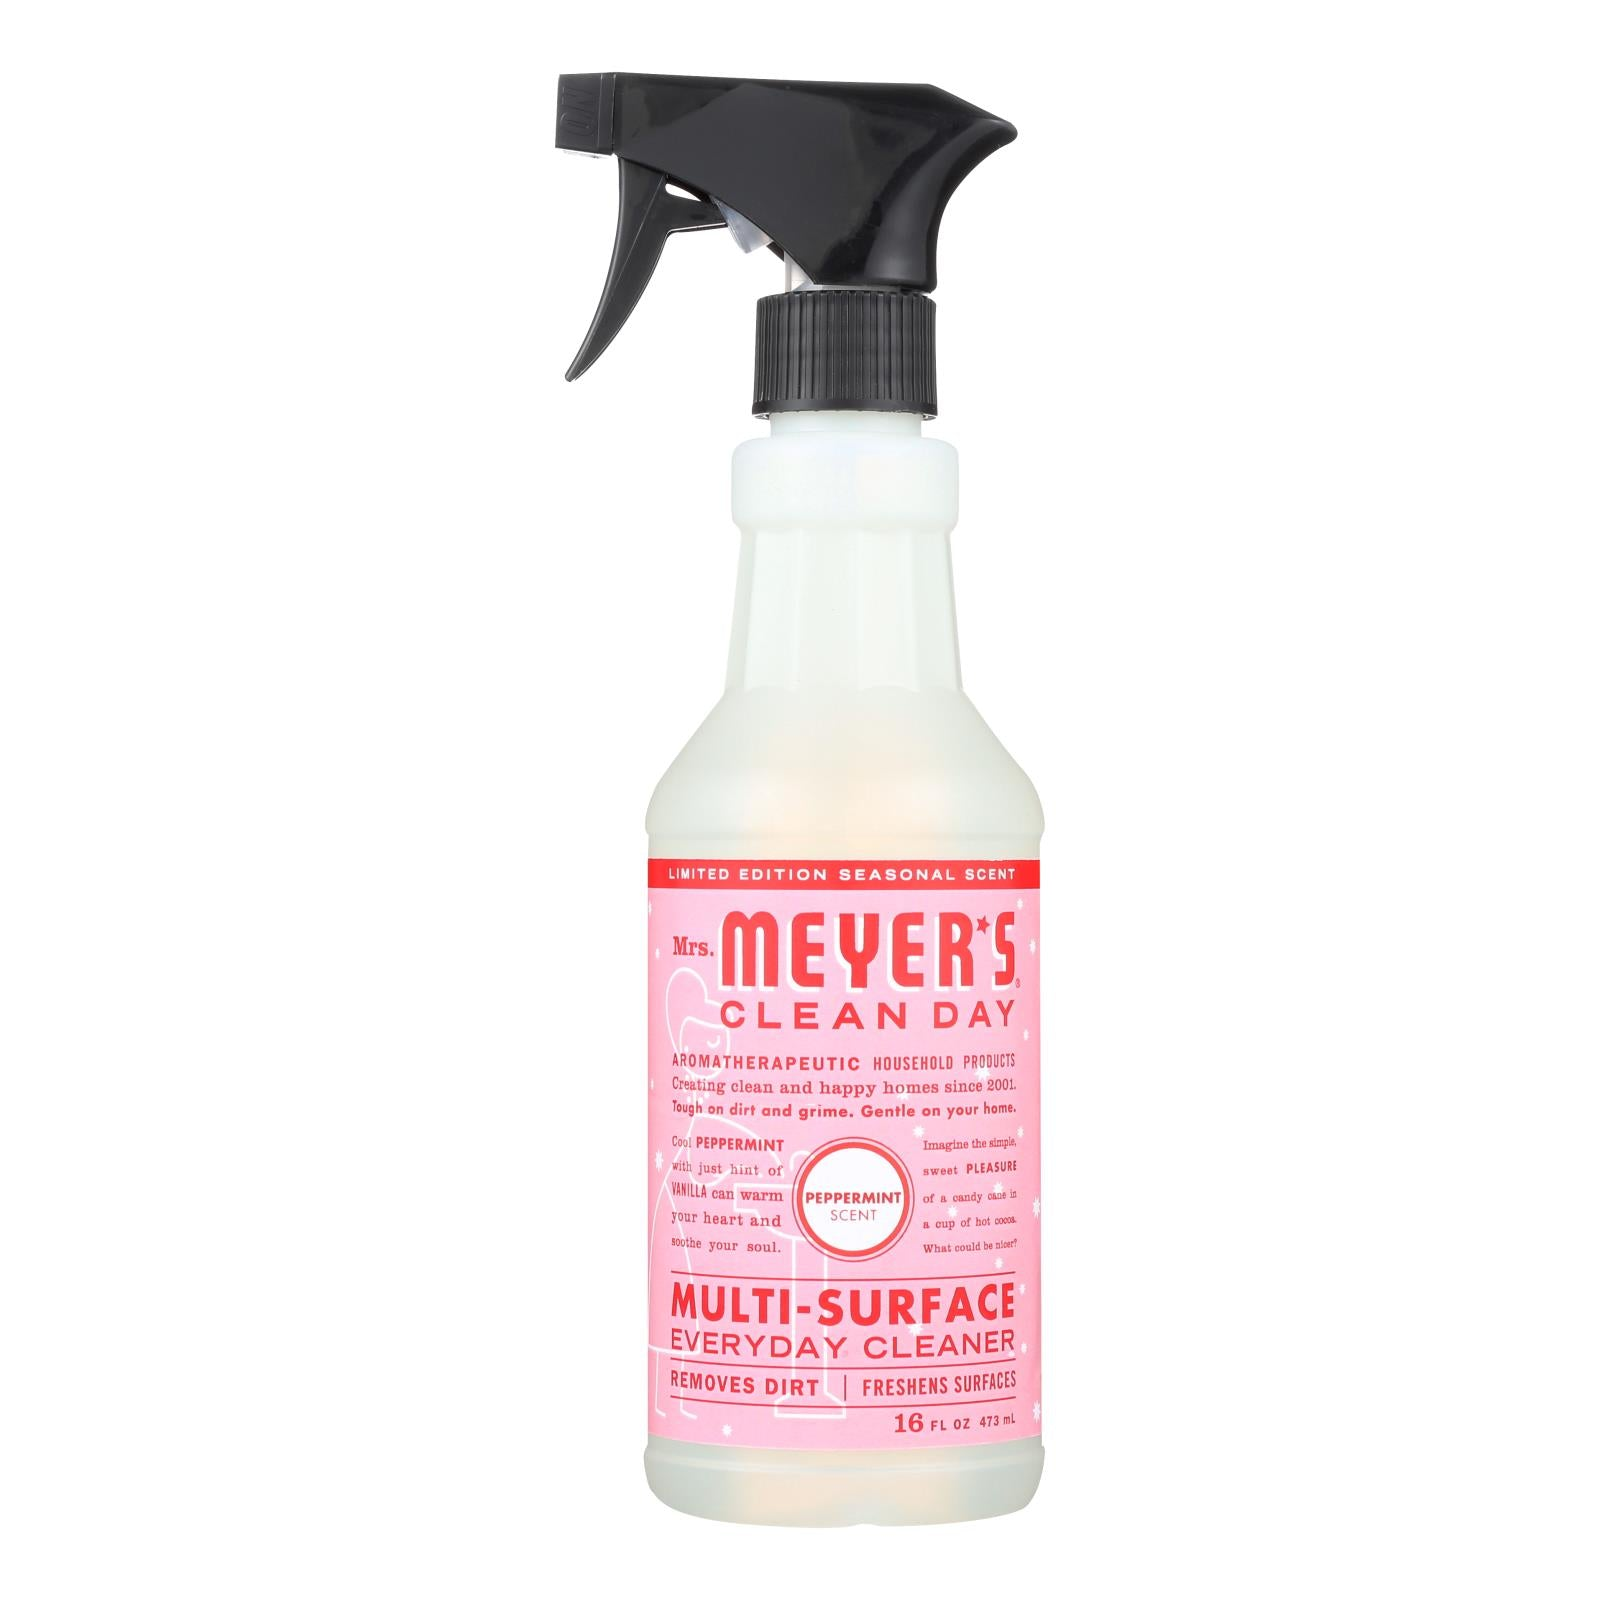 Mrs. Meyer's Clean Day - Multi-surface Everyday Cleaner - Peppermint - Case Of 6 - 16 Fl Oz. - J. Rose Global